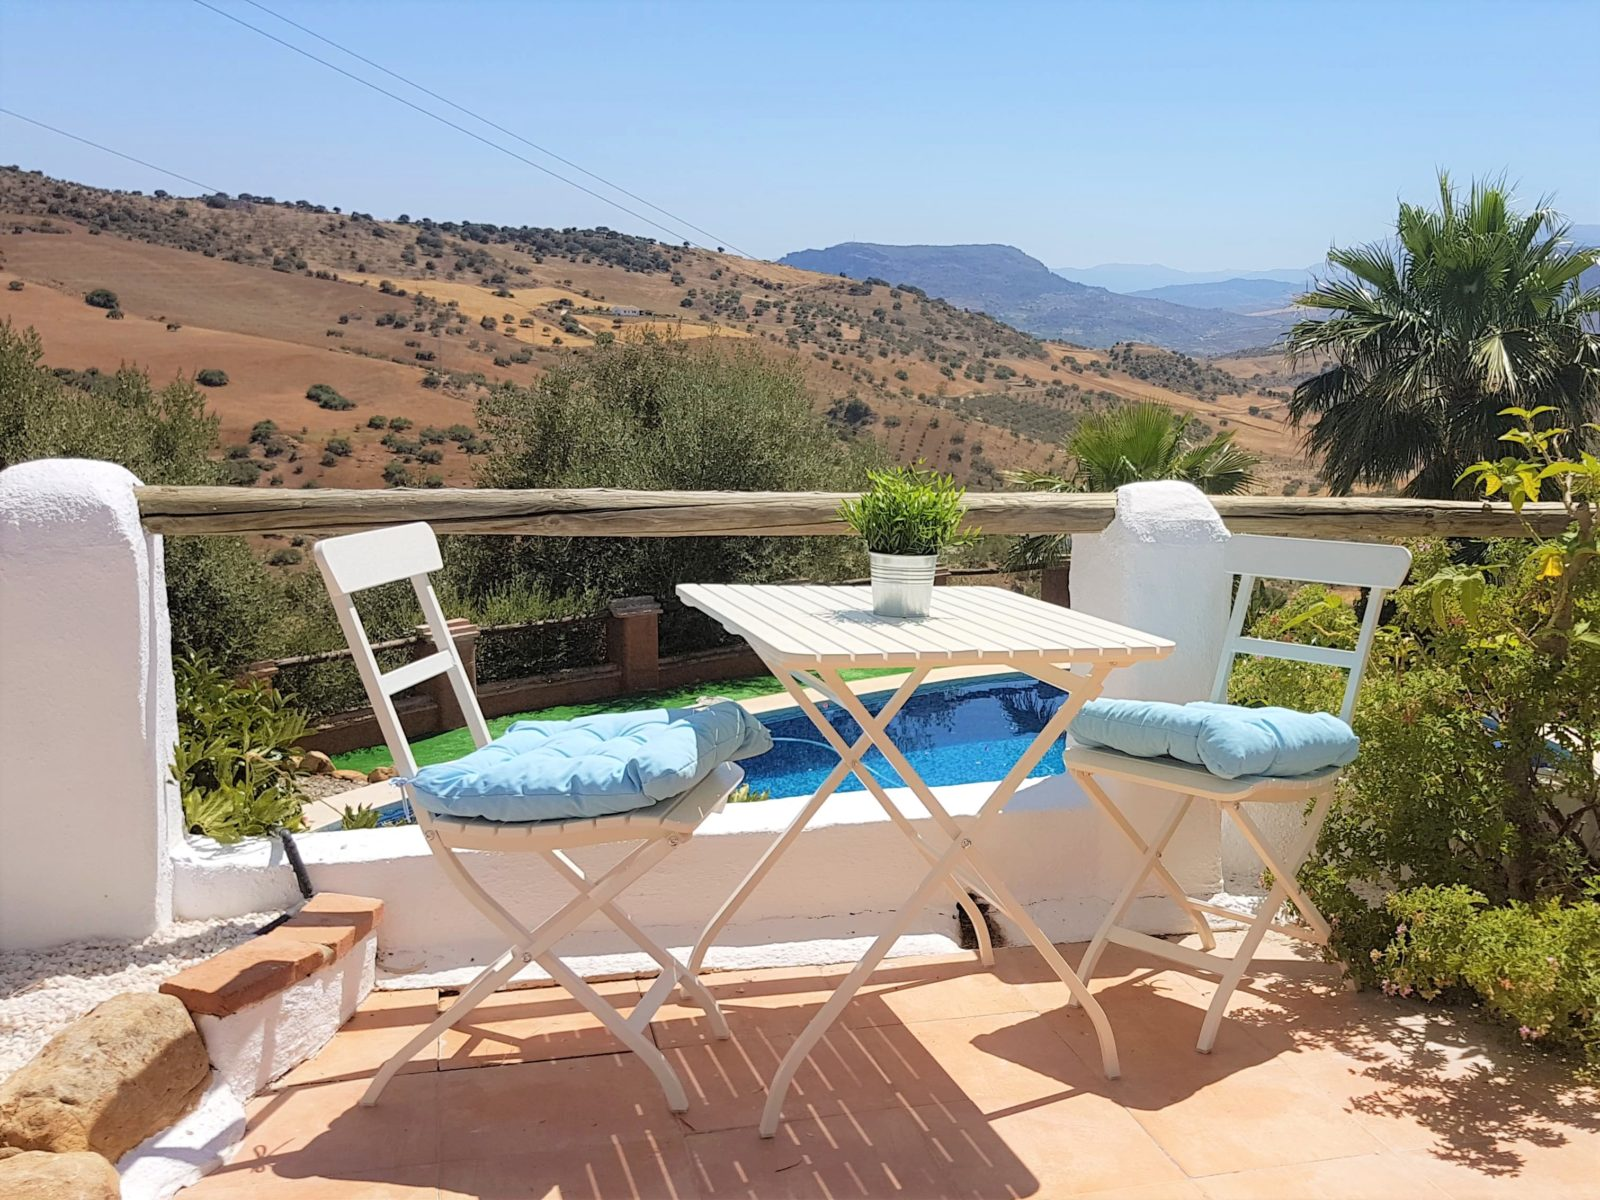 1 bedroom studio apartment - Finca Gran Cerros